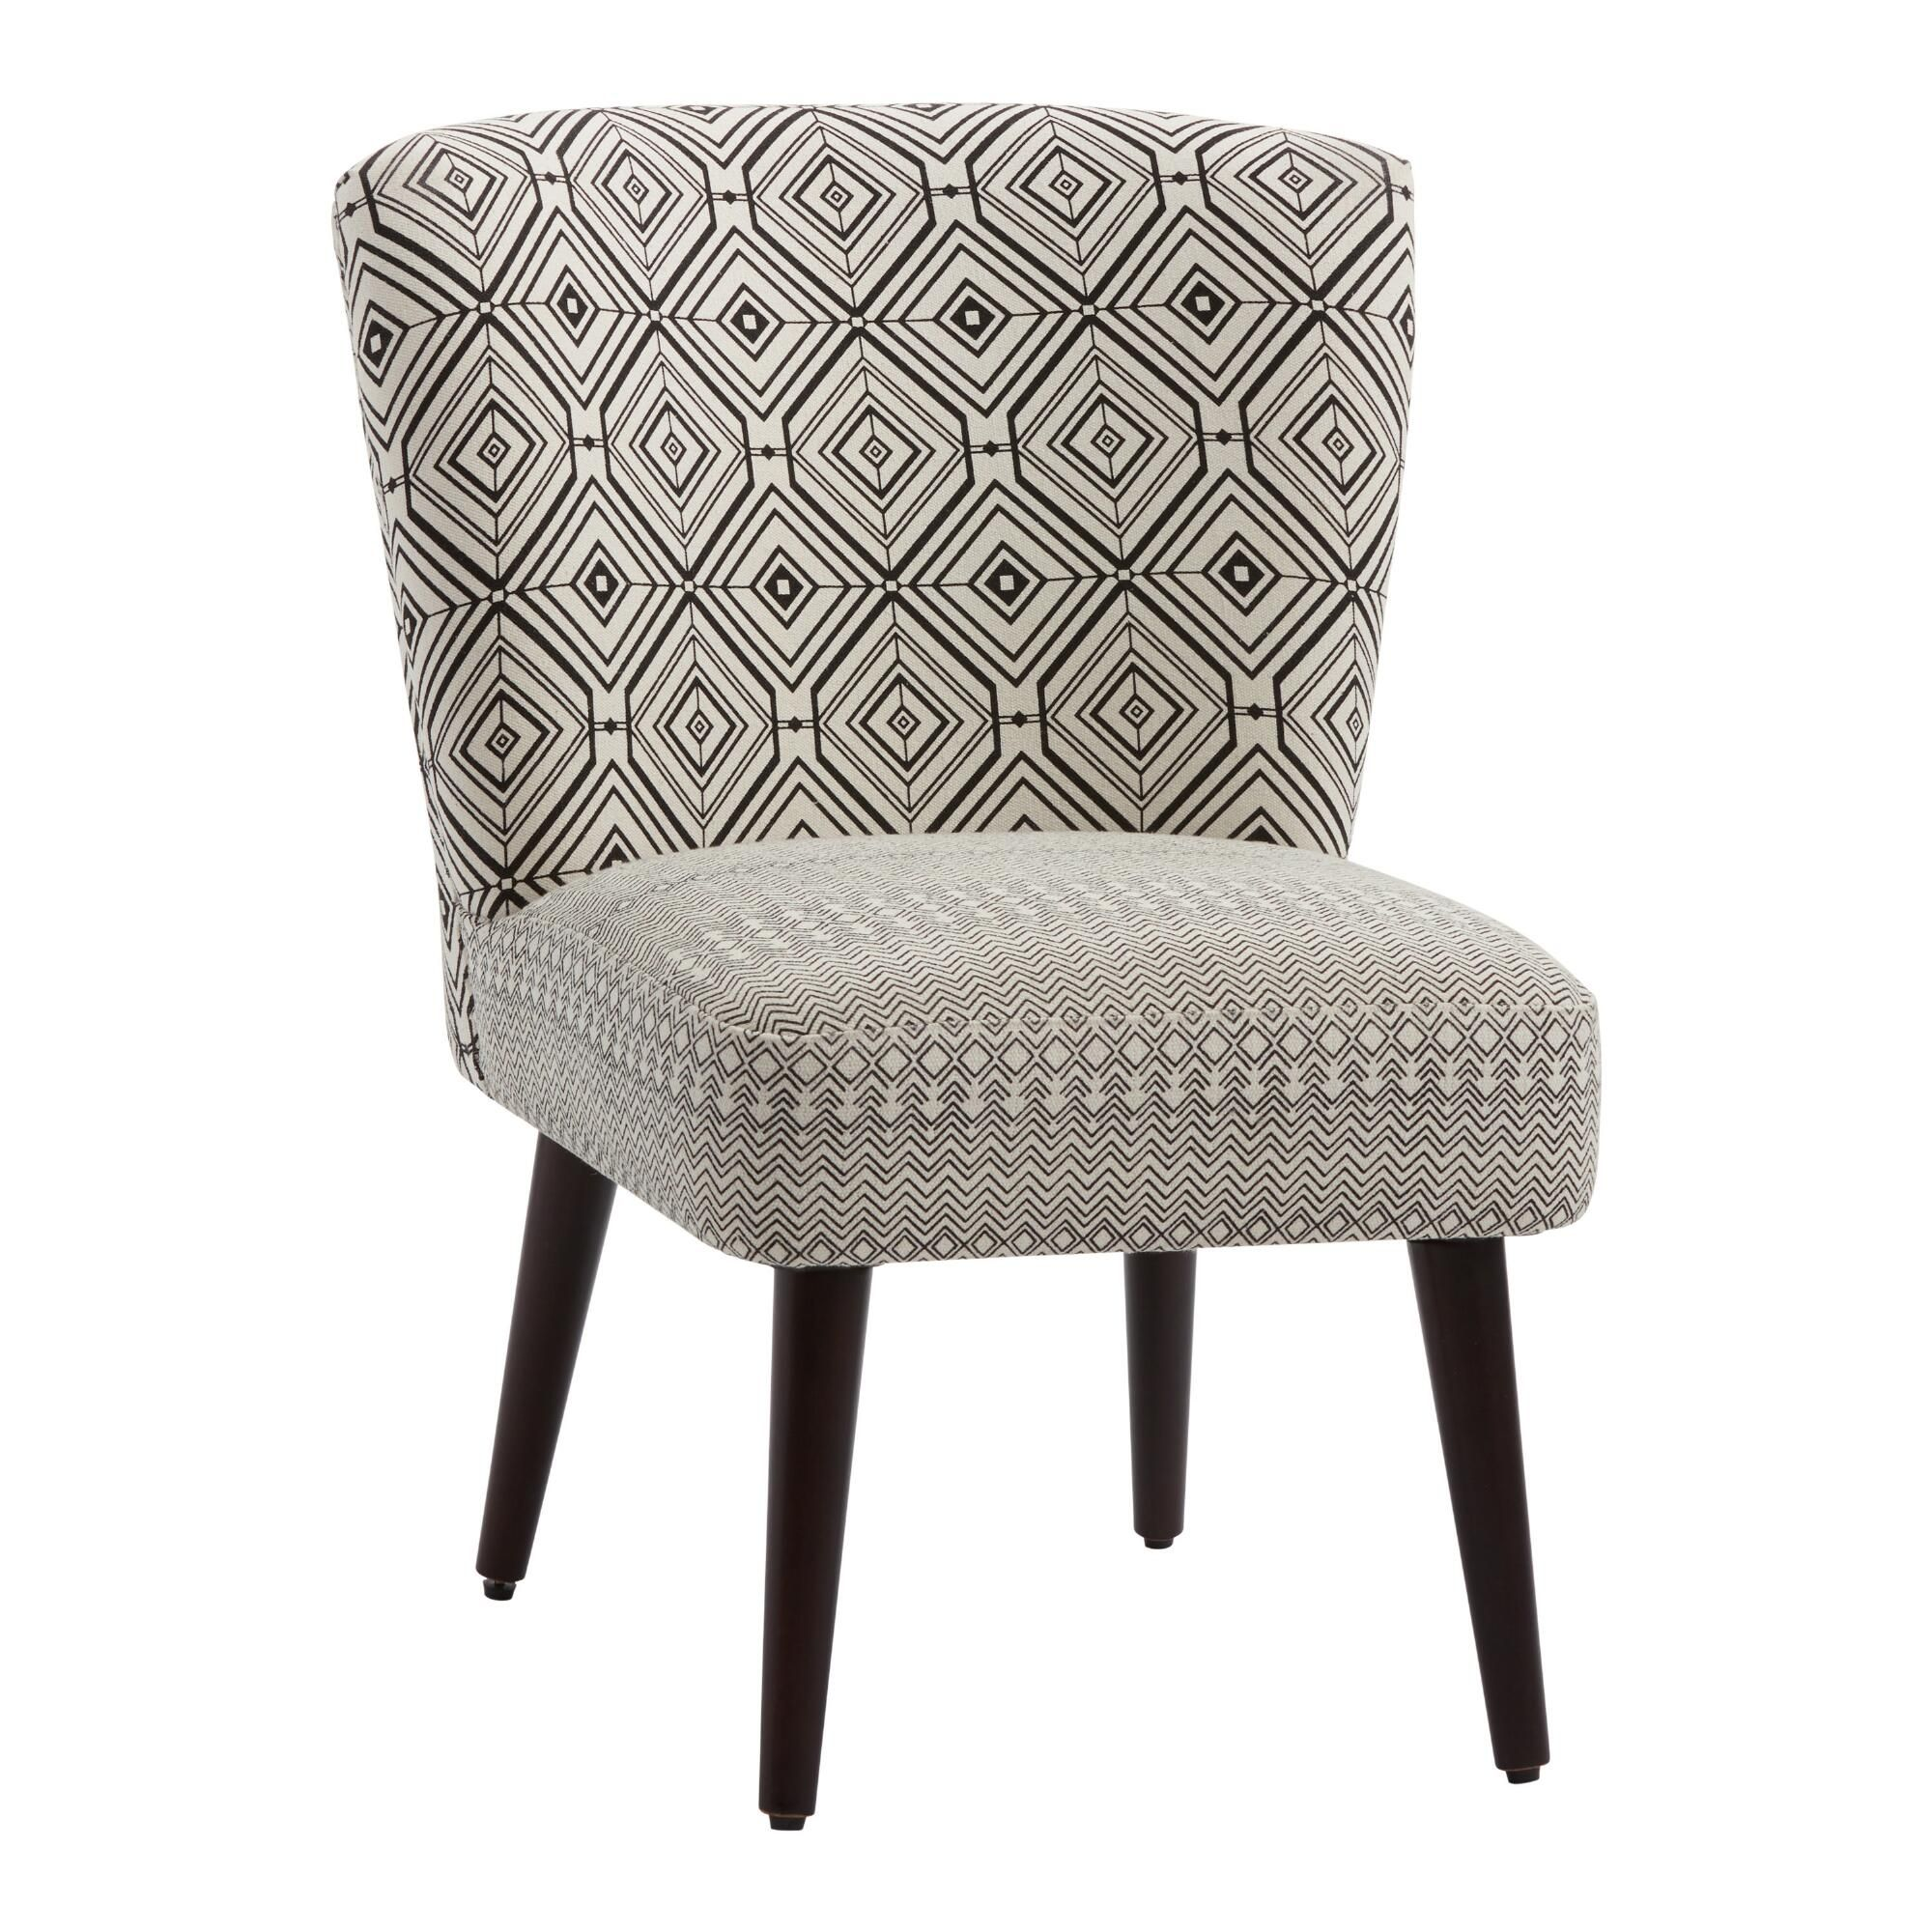 Best Black And White Geo Print Jenny Upholstered Chair 640 x 480